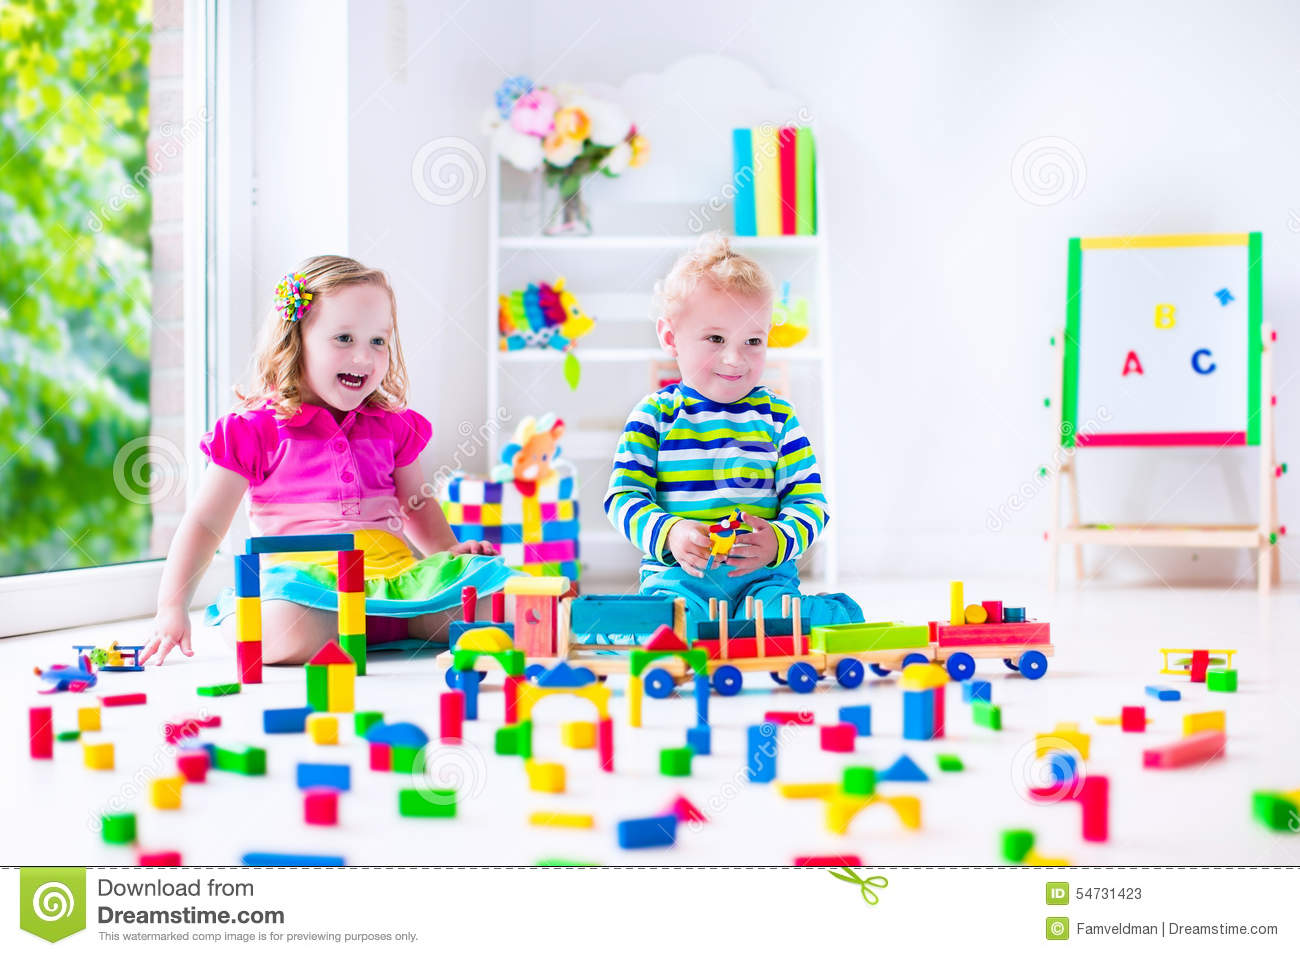 ... tower of colorful wooden blocks. Child playing with toy train